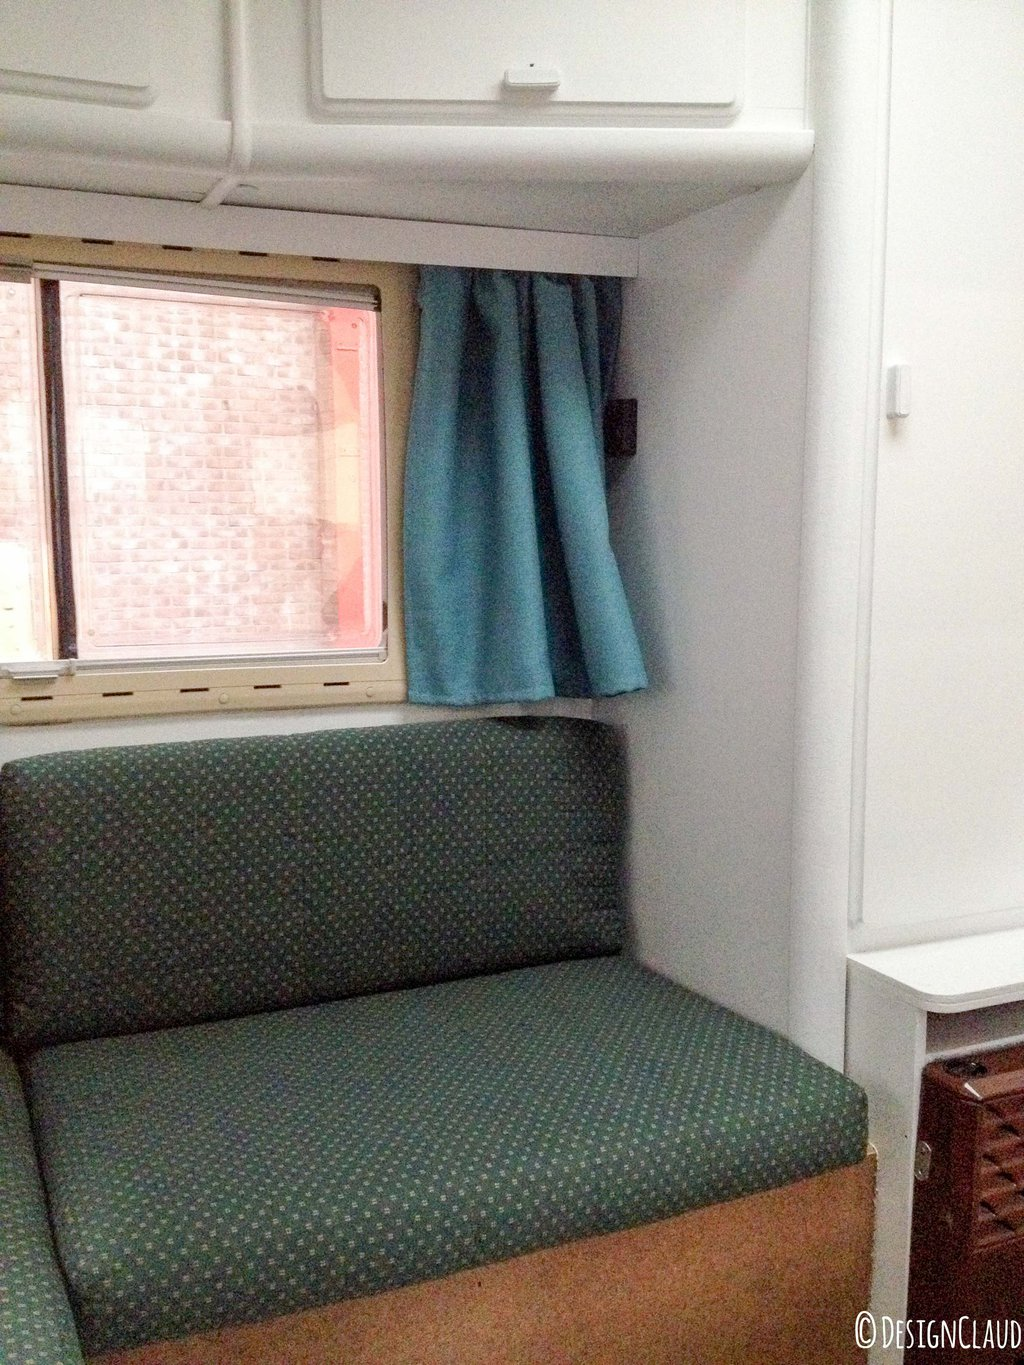 Camper window treatments - Here You See The Subfloor We Have Also Mounted Against The Benches This Was Also Carpeted In A Dirty Brown Color